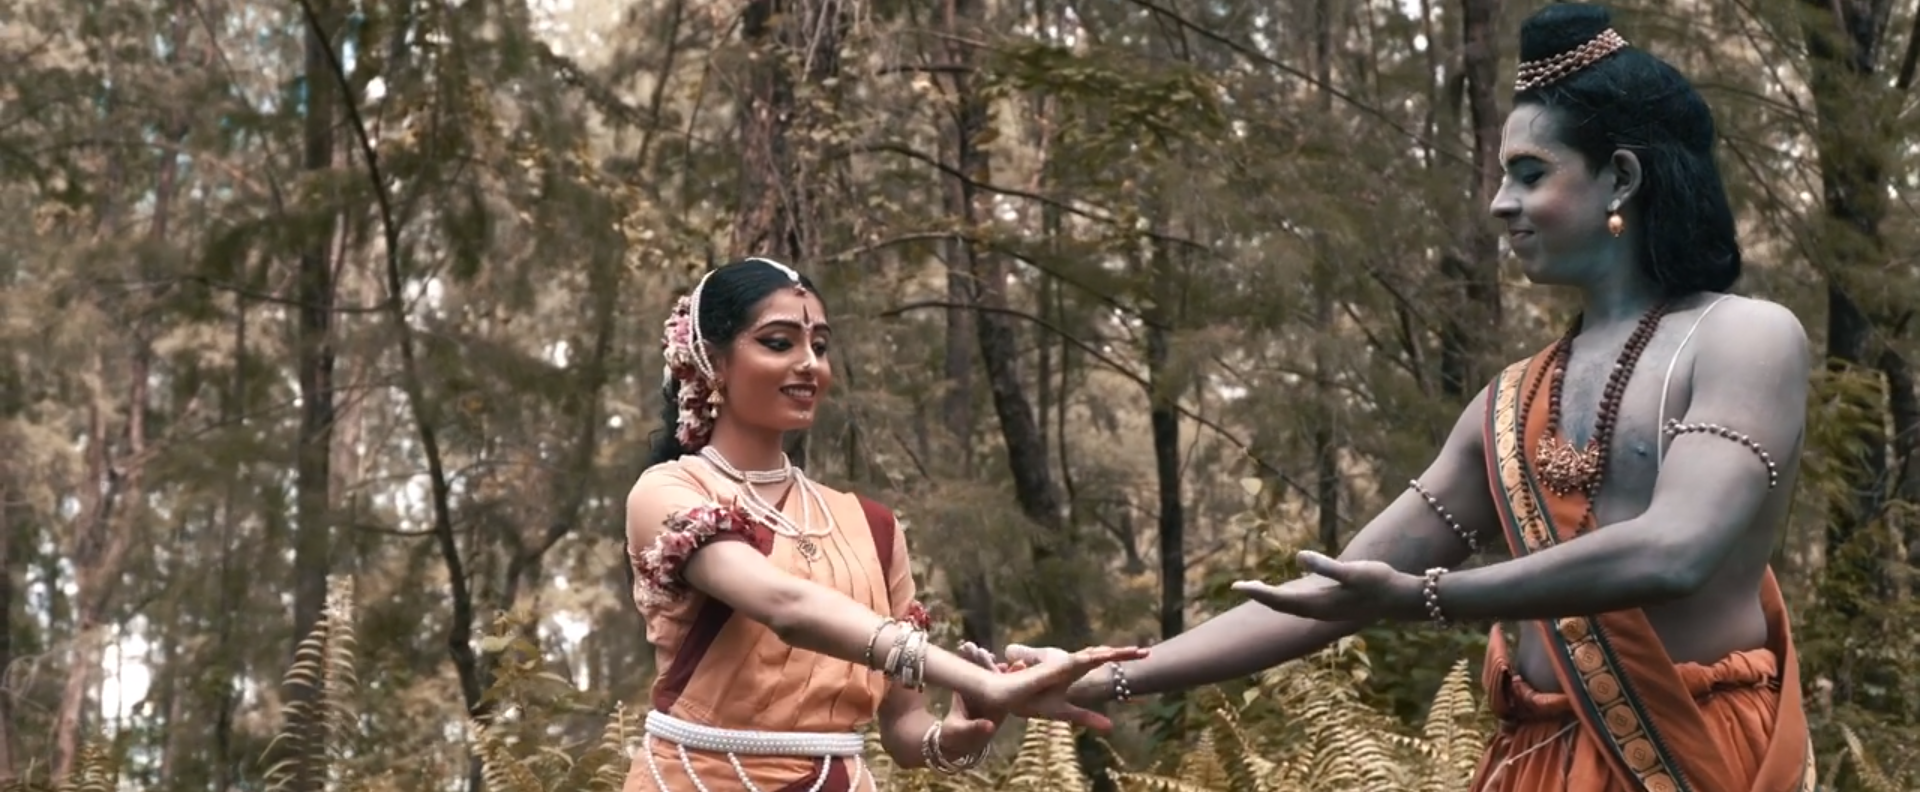 Omkar Arts' The Golden Deer starts with a joyful Rama and Sita in the forest. Photo Courtesy: IHC